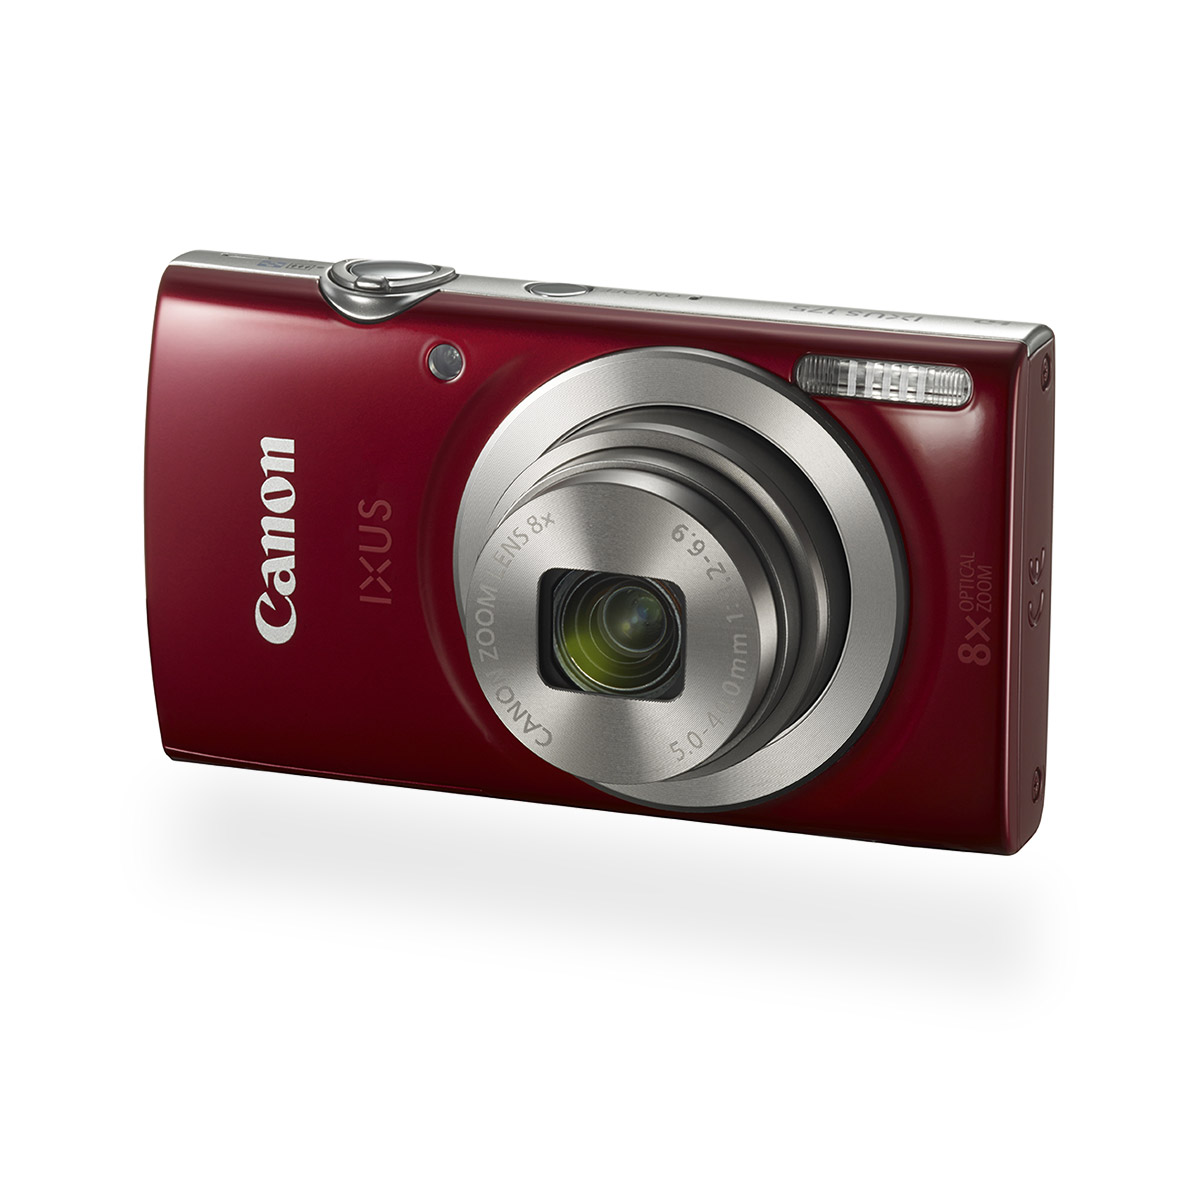 Canon IXUS 175 digital compact camera red front angled